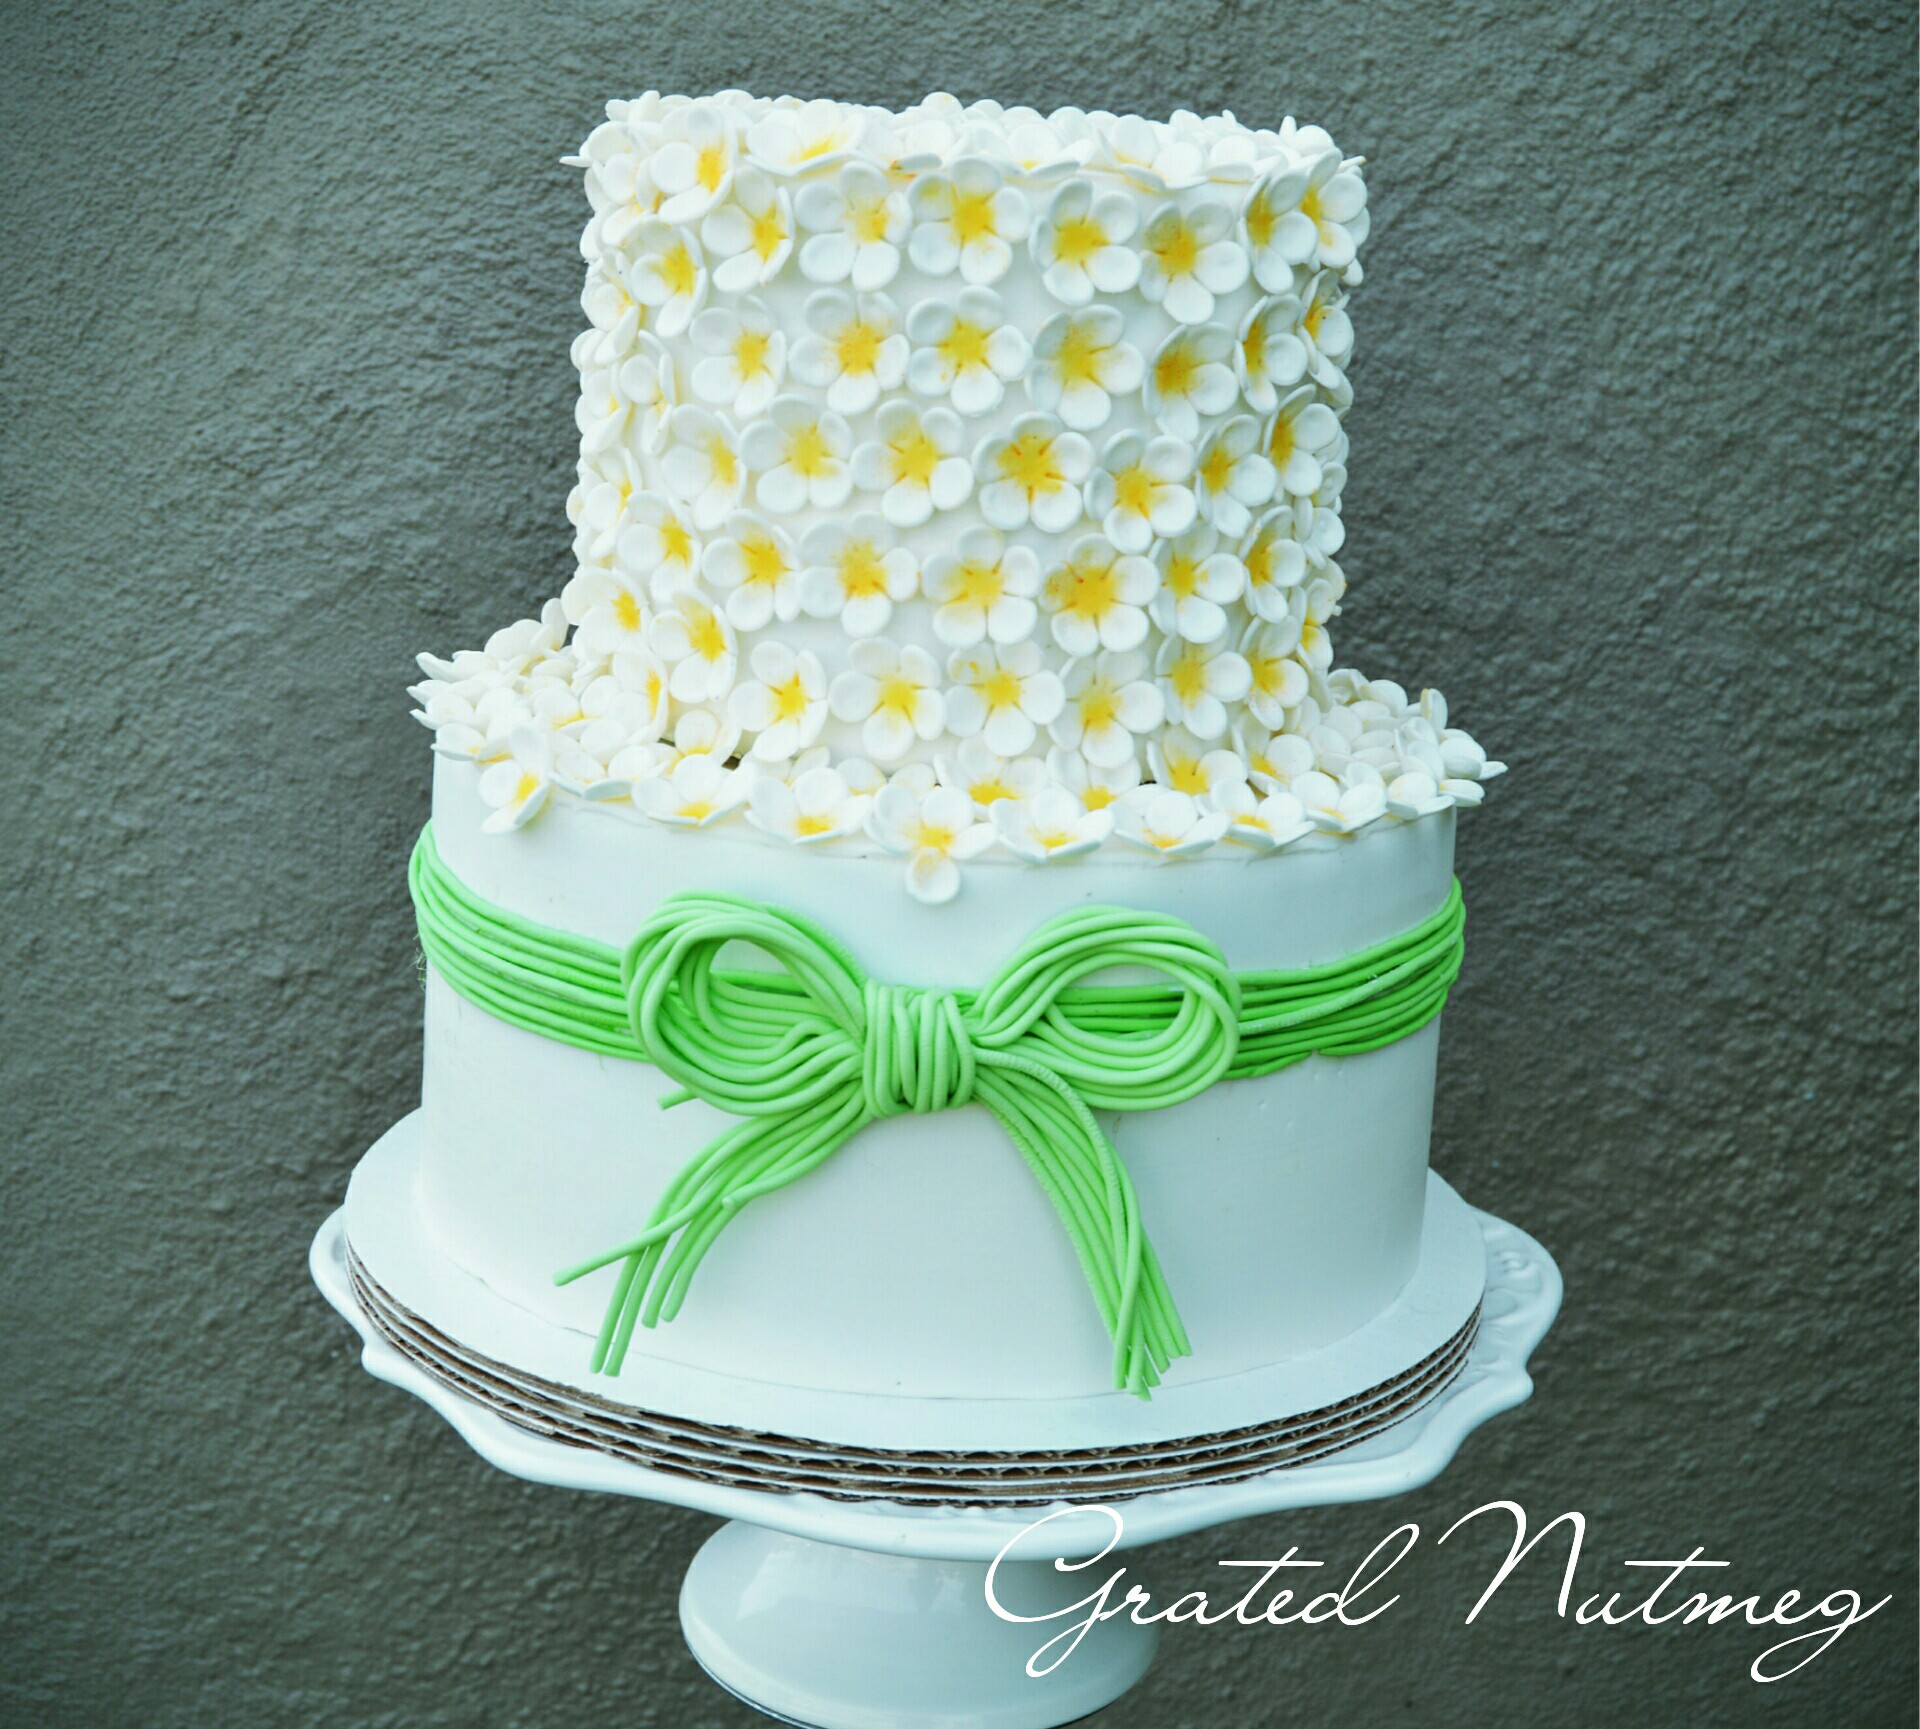 Wedding Cake with Flowered Top Tier – Grated Nutmeg